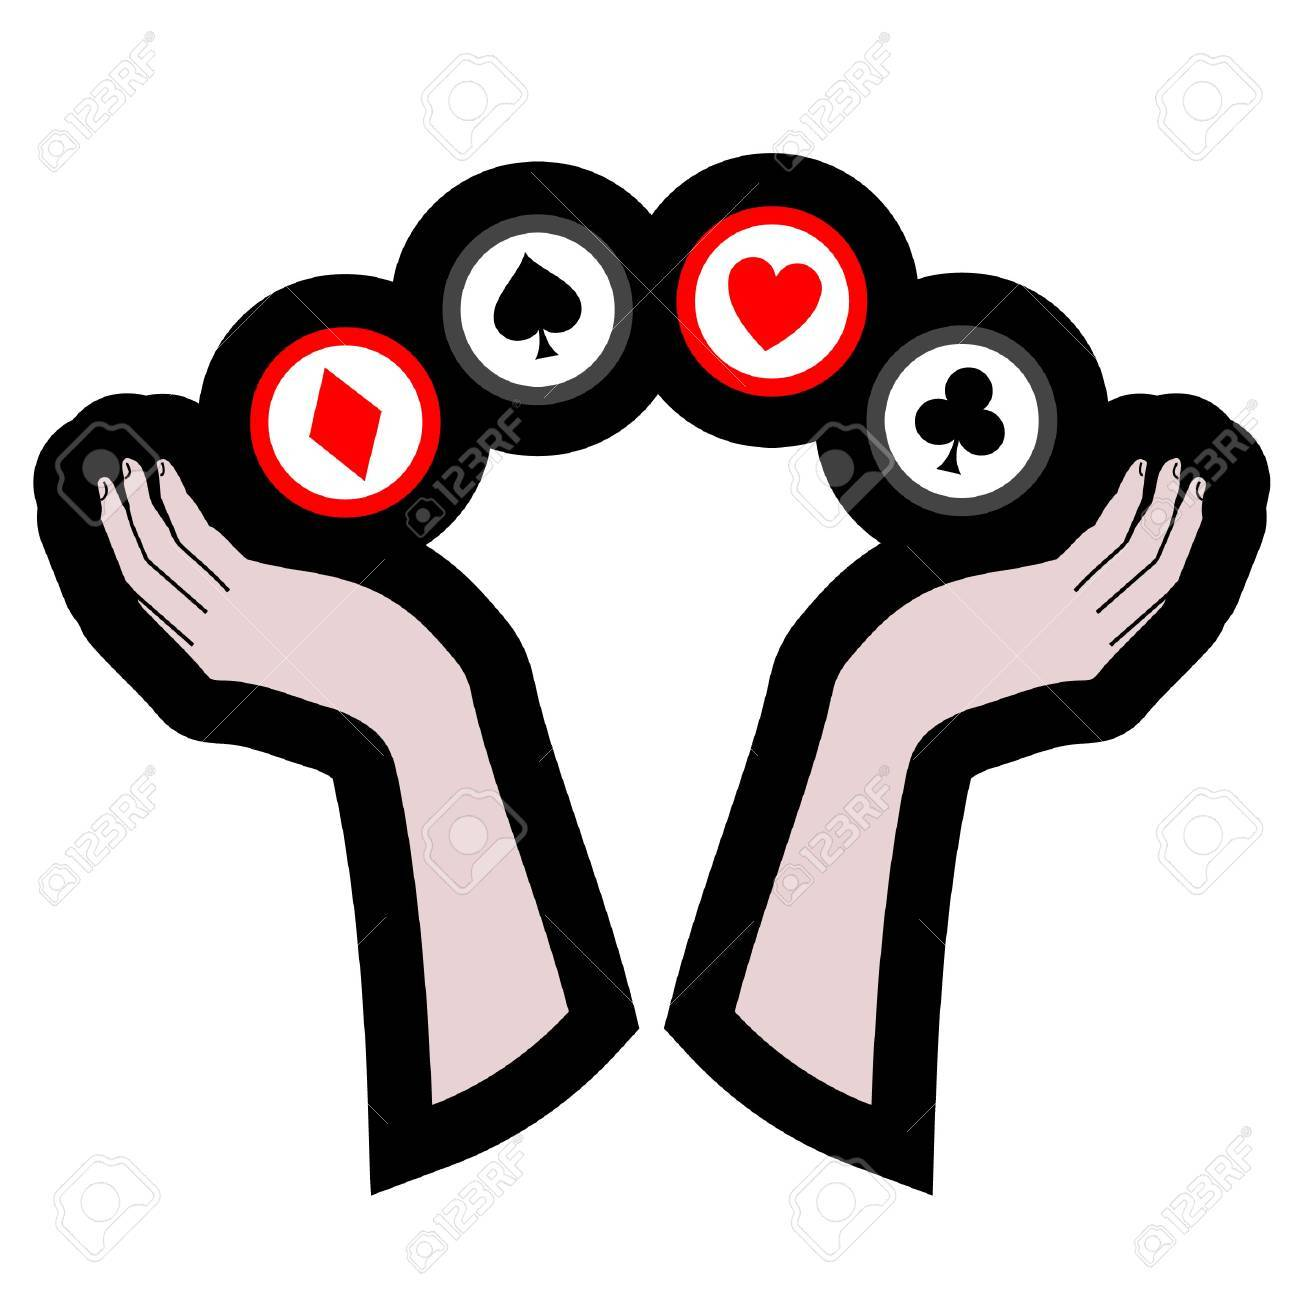 Poker Symbols Supported By Two Hands Royalty Free Cliparts Vectors